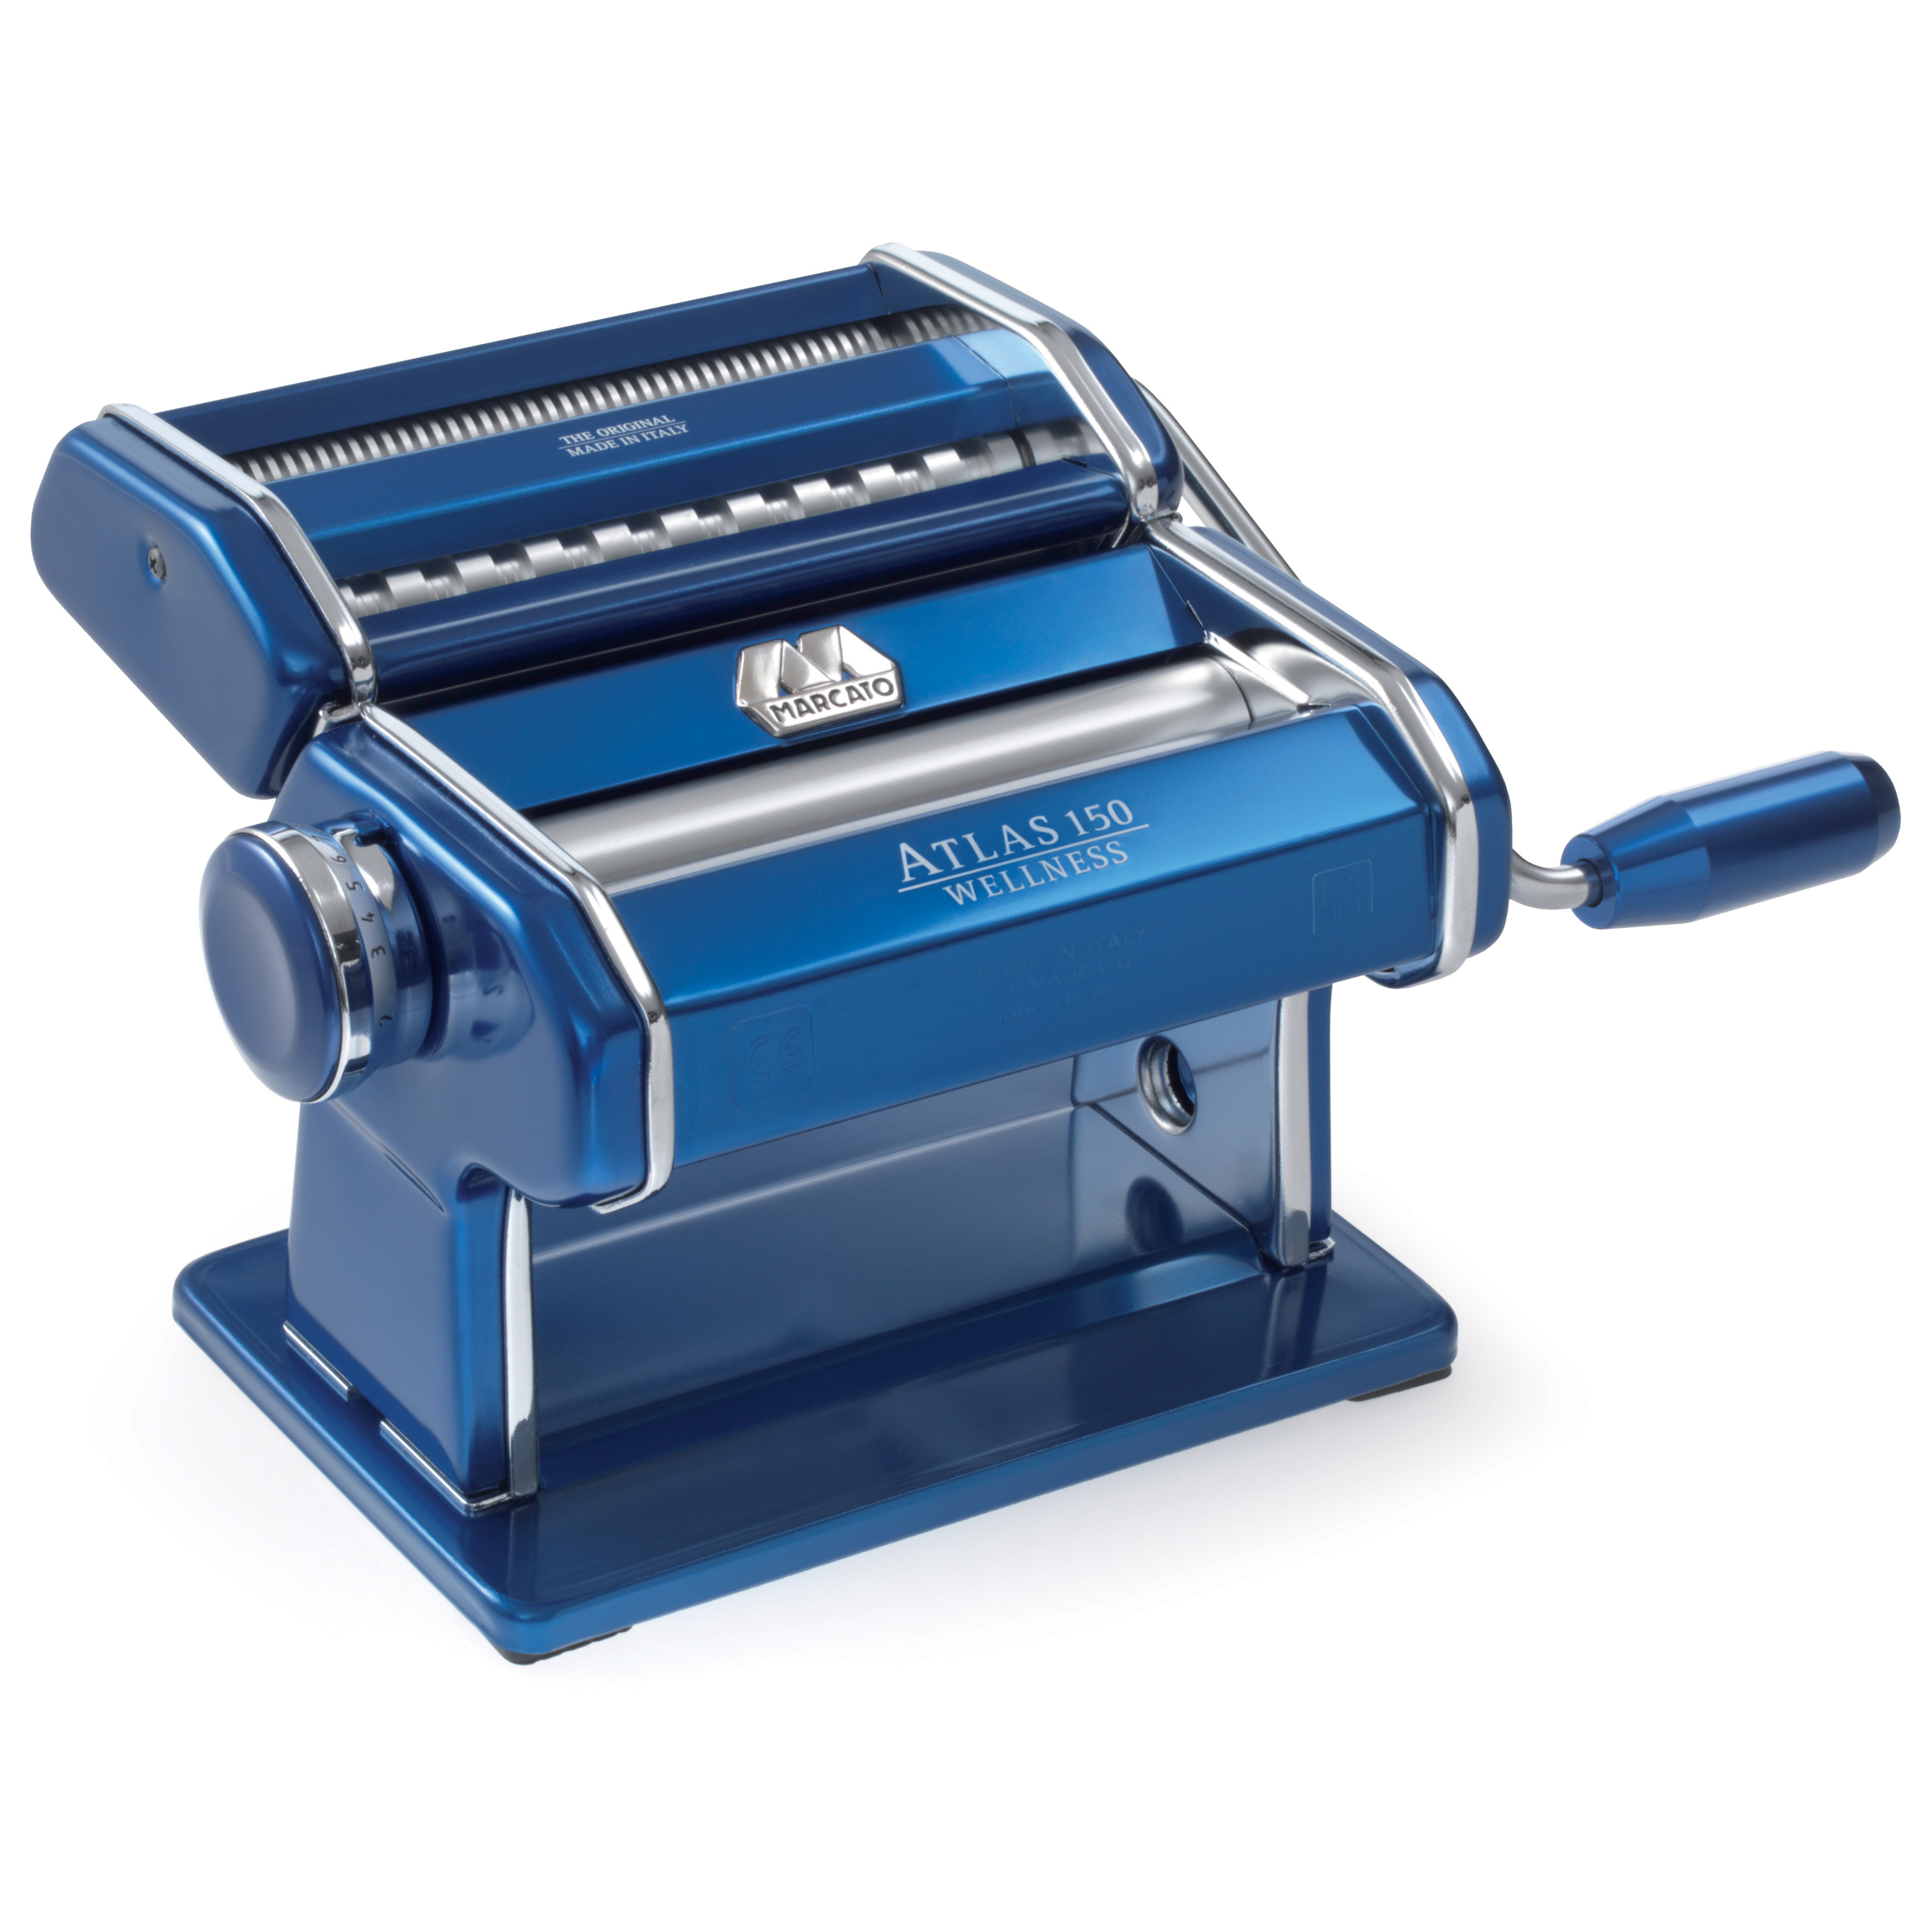 ATLAS 150 PASTA MACHINE BLUE